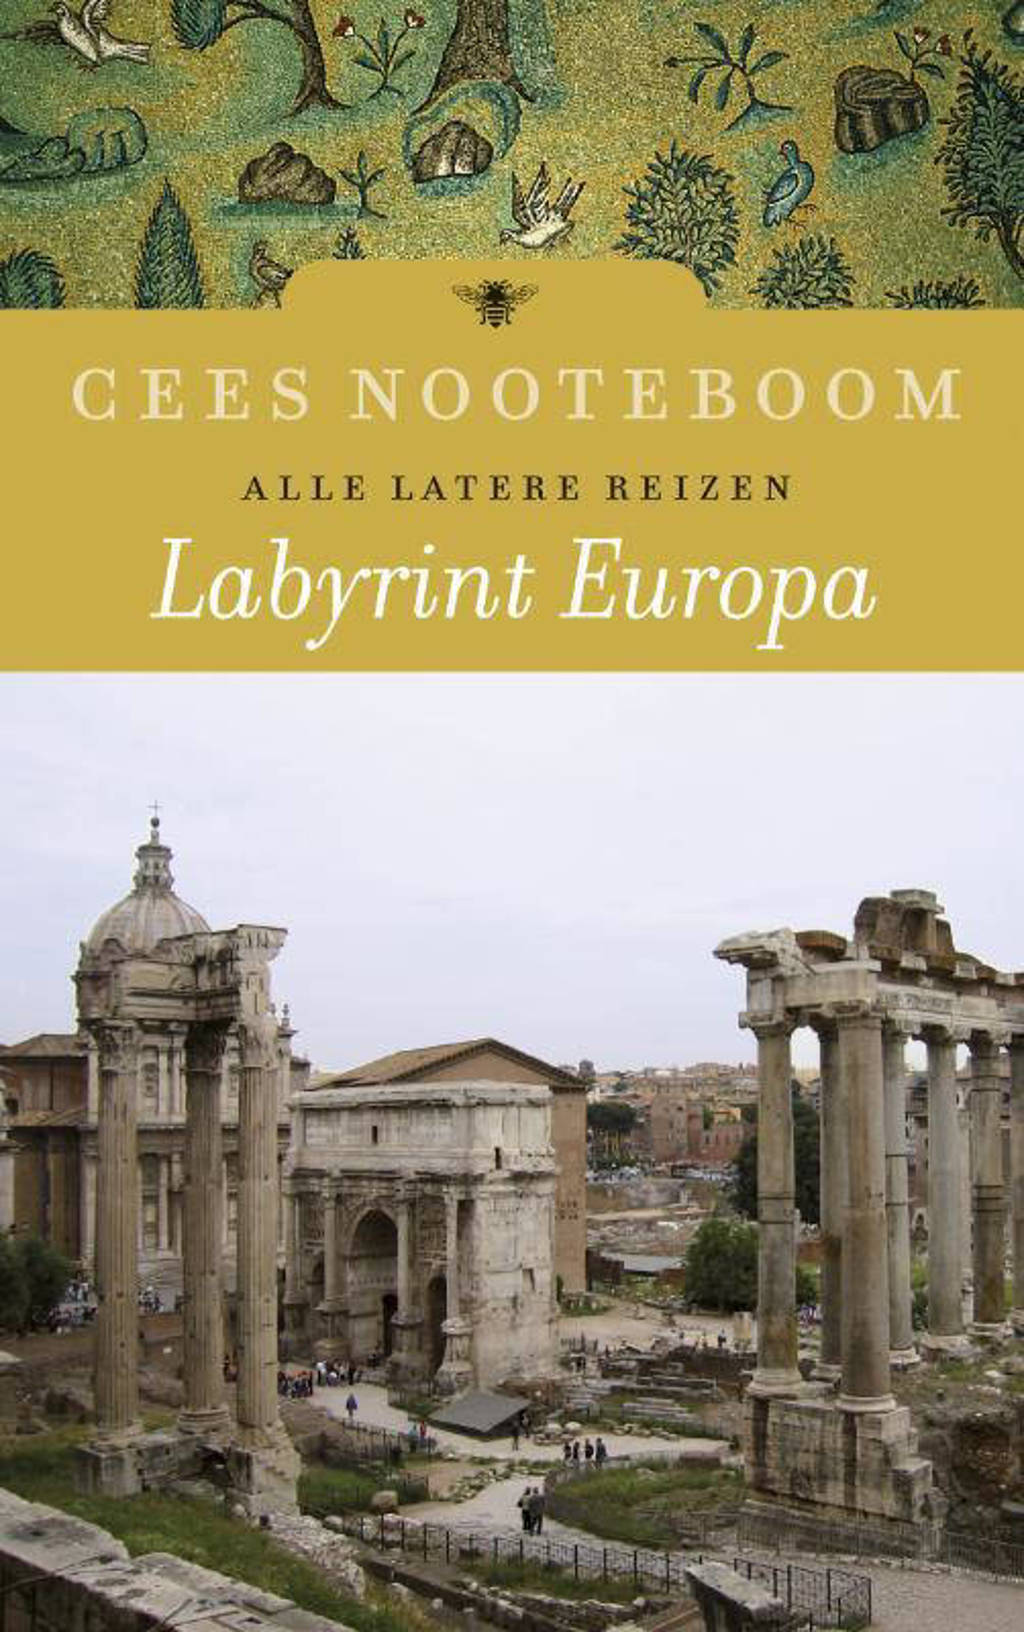 Labyrint Europa Alle latere reizen - Cees Nooteboom